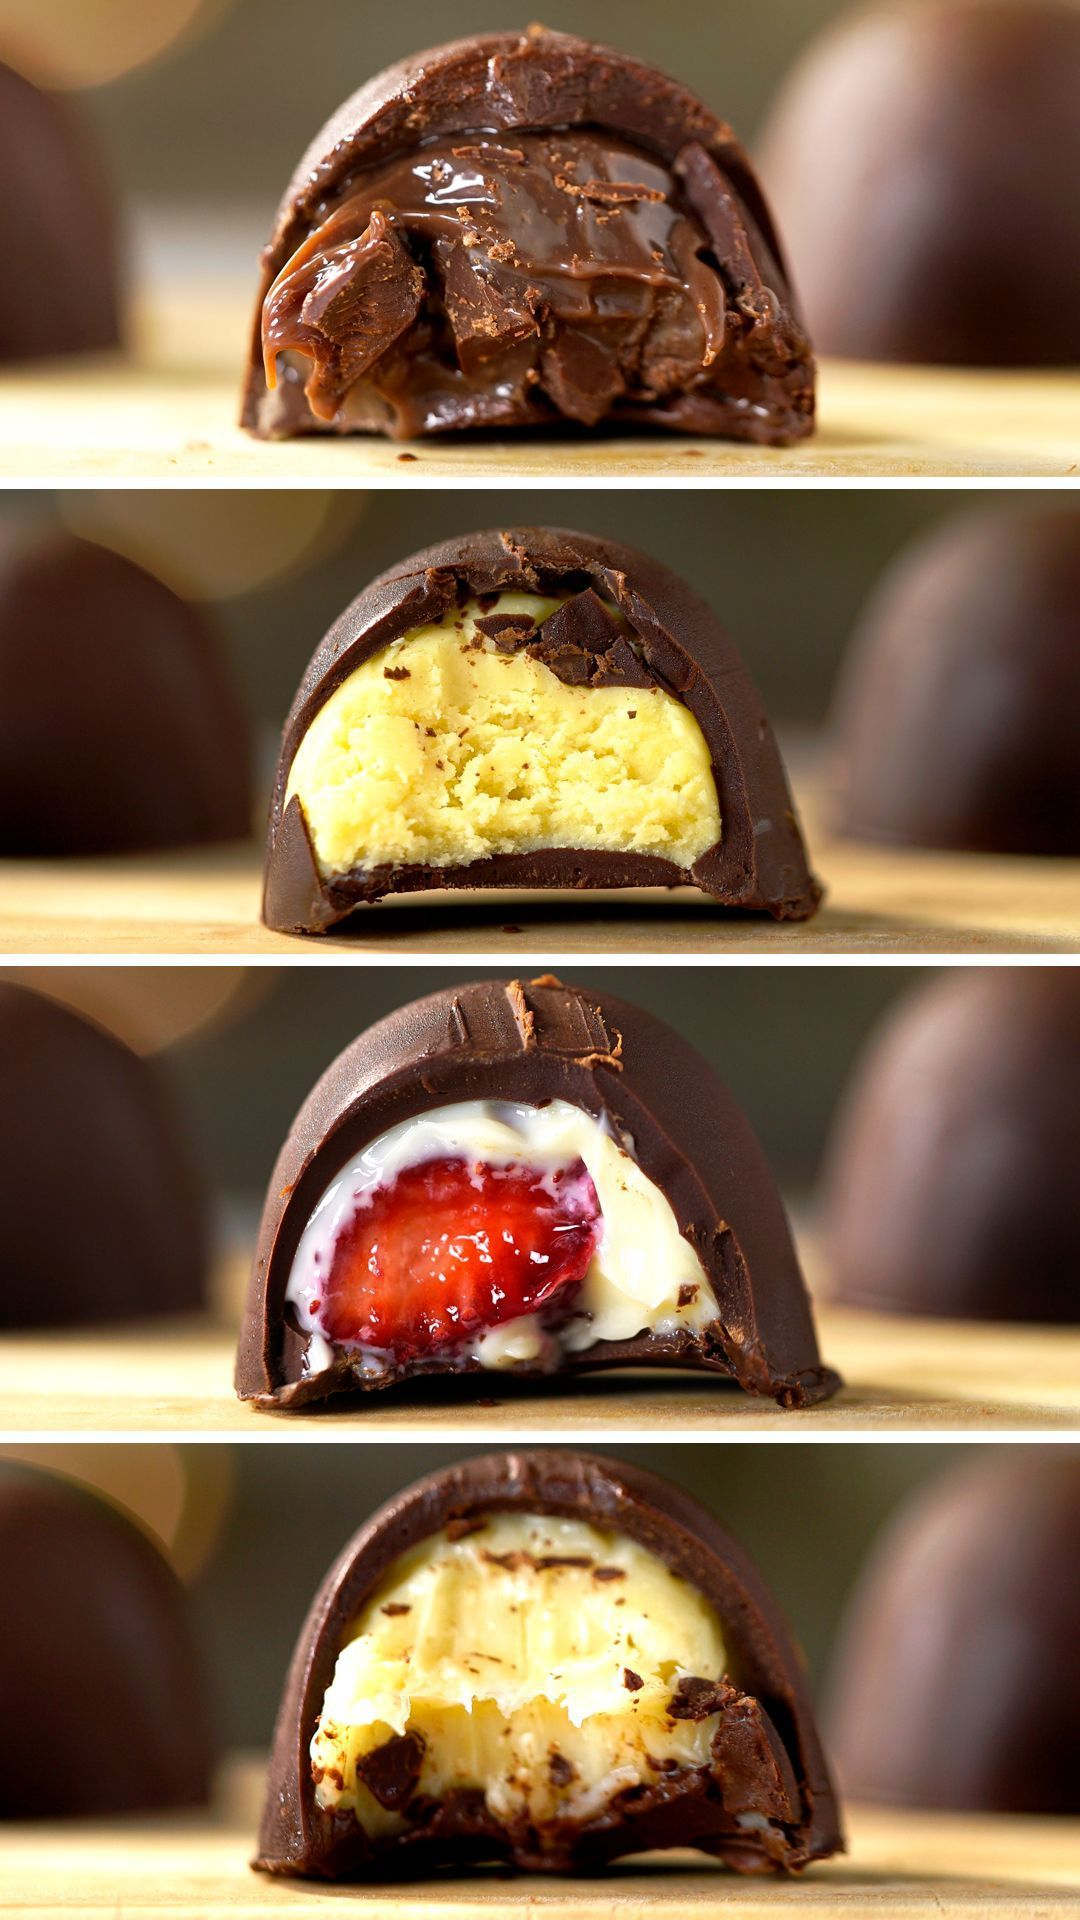 Ways to Stuff Chocolate Truffles - Check out the recipe for 4 ways of stuffing chocolate truffles